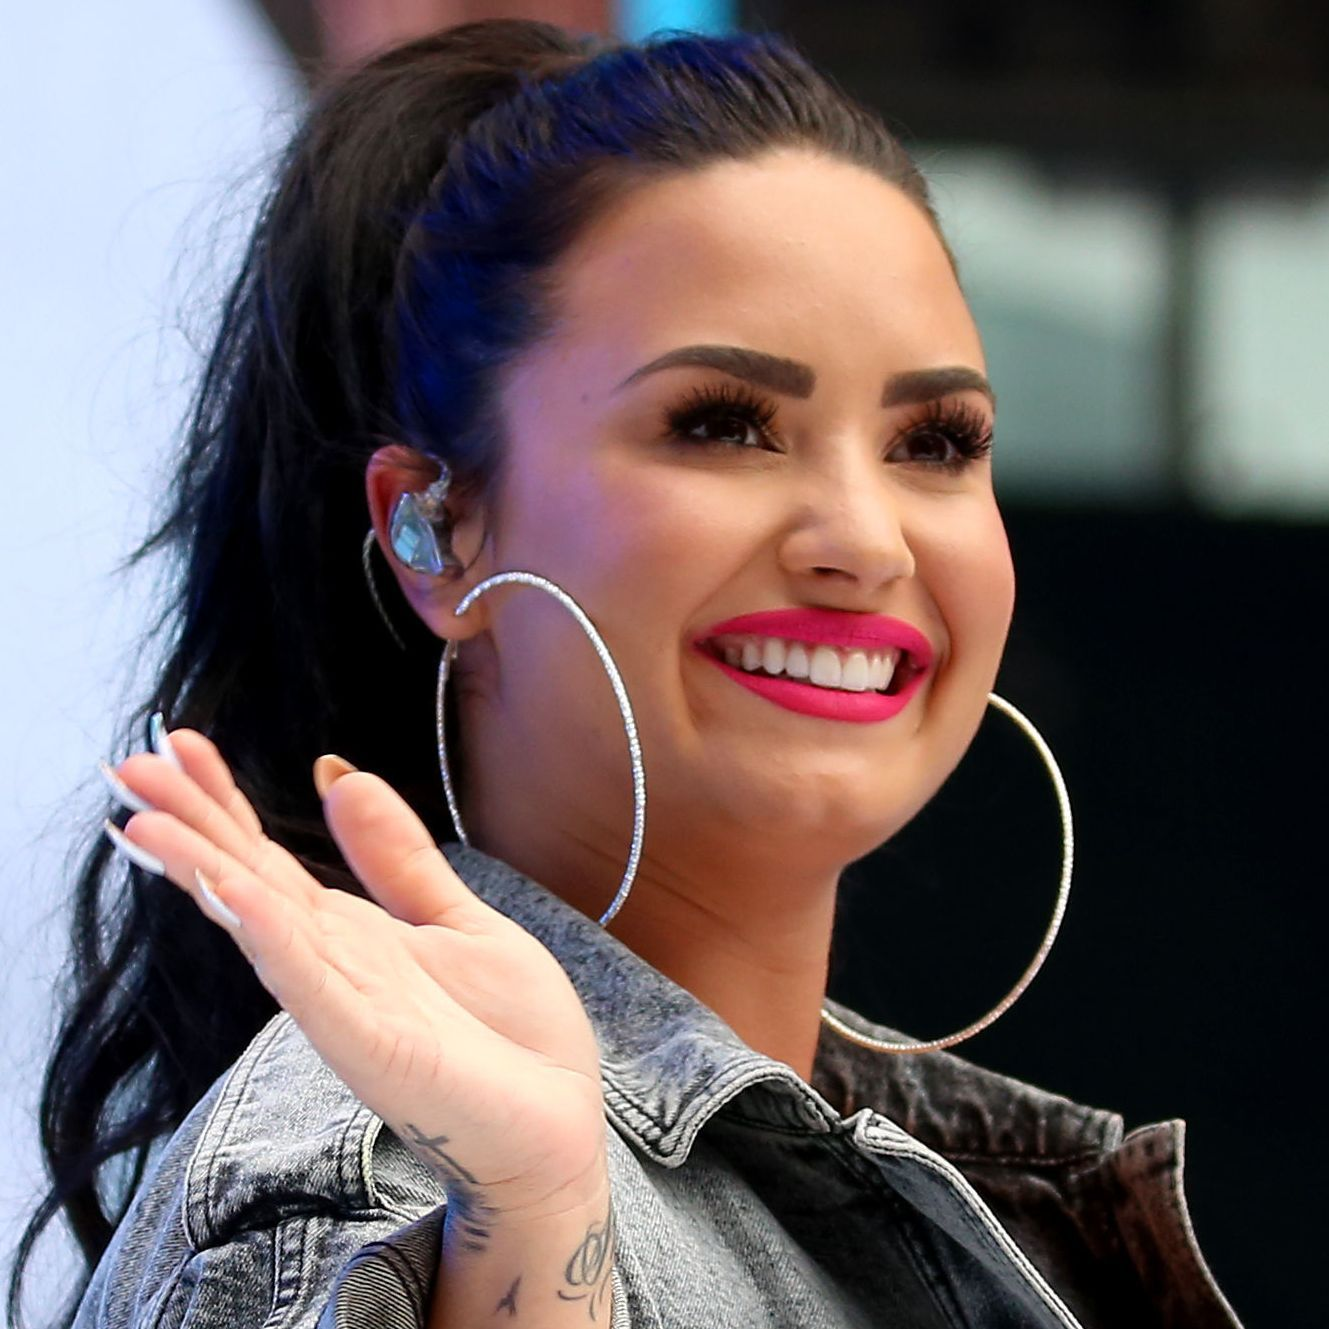 Who is demi lovato currently dating 2020 calendar